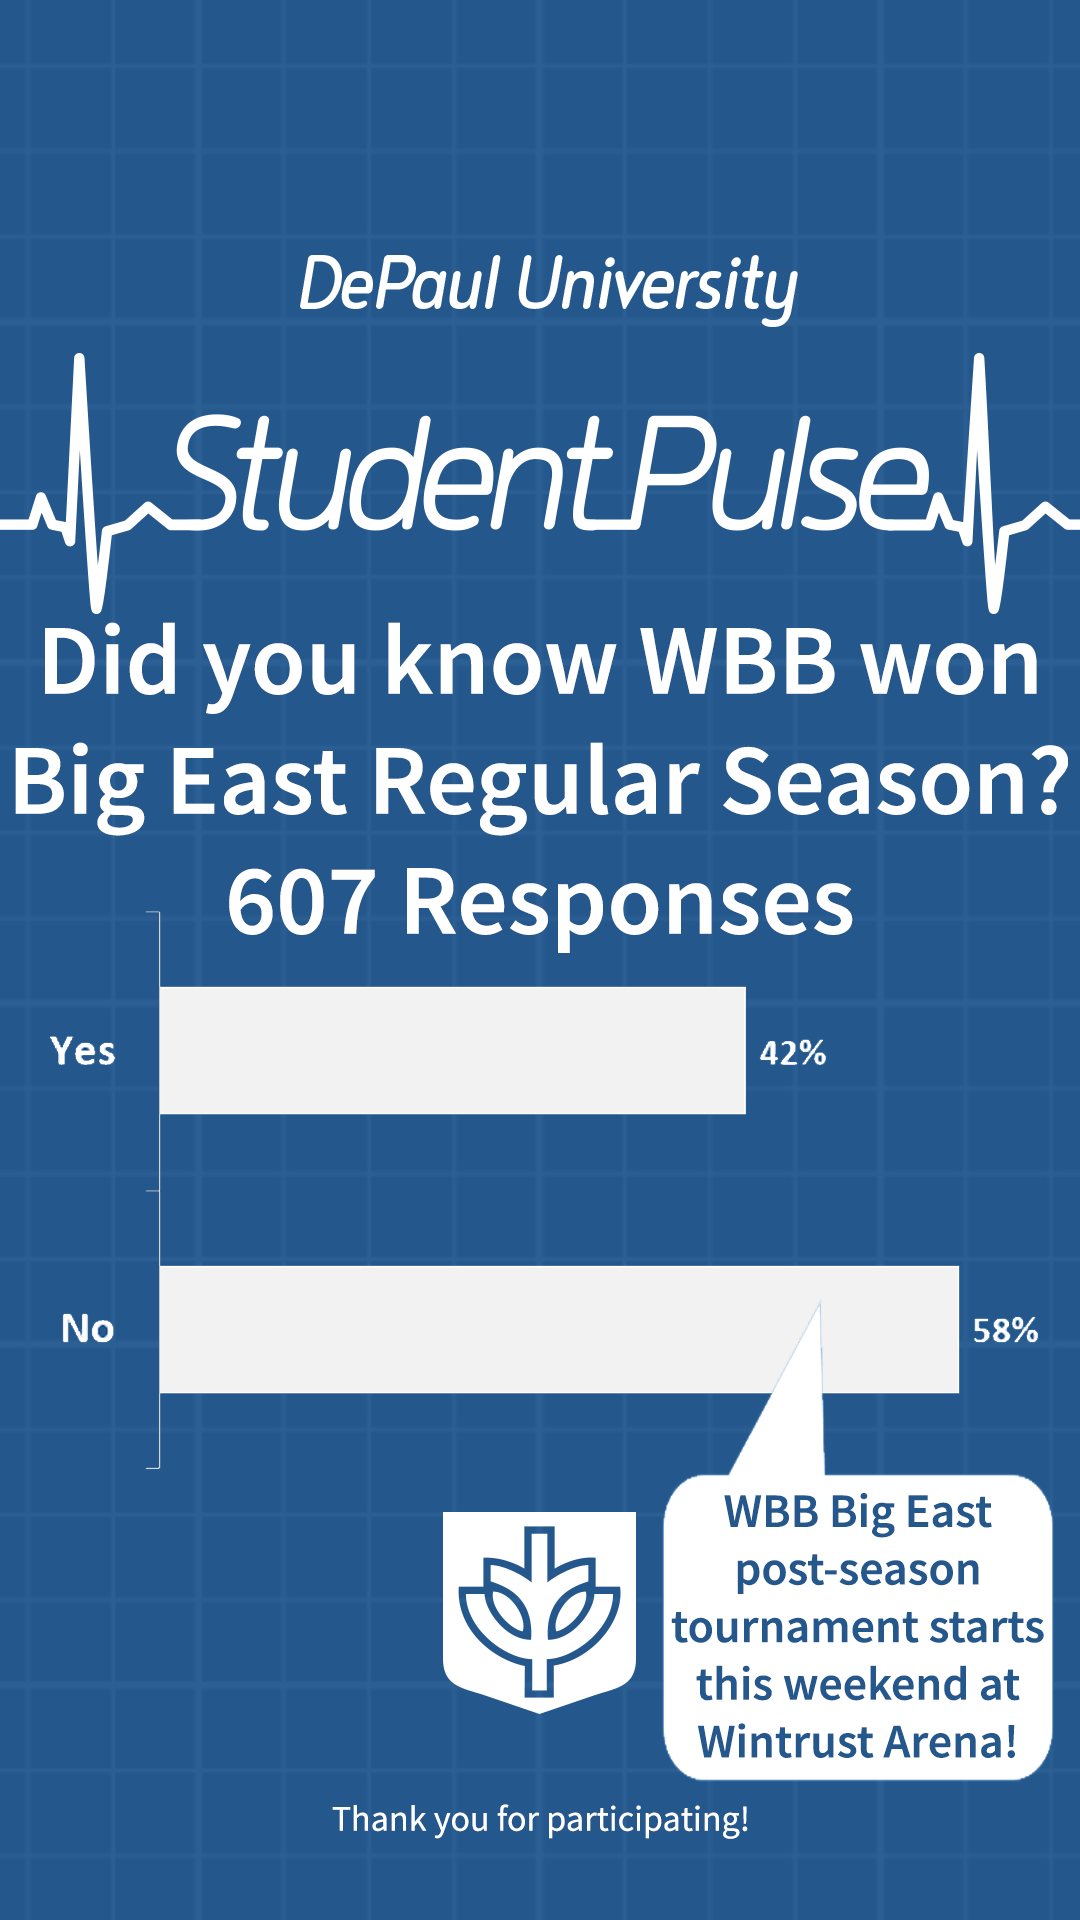 Did you know WBB won Big East regular season?